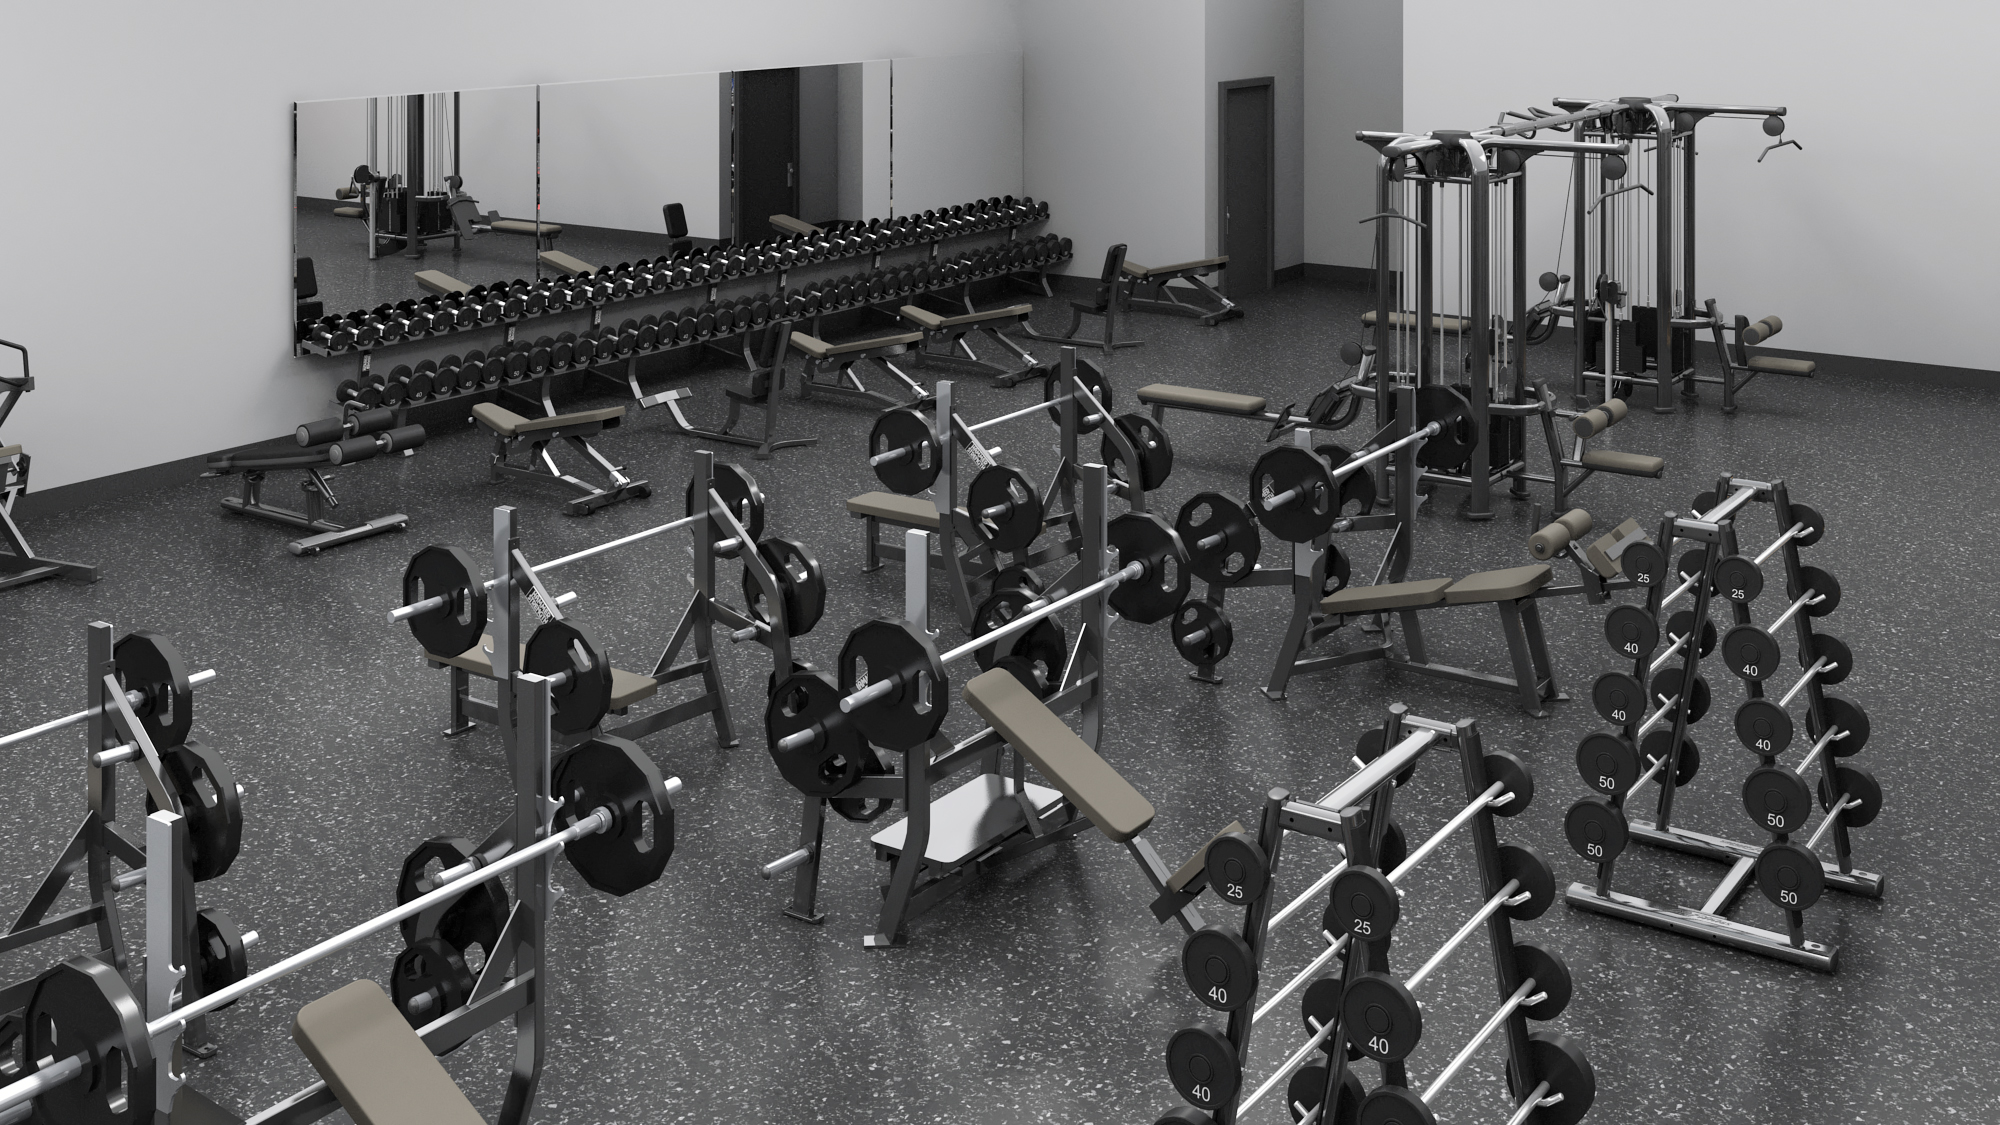 You will have a wide offering of free-weights, benches and more